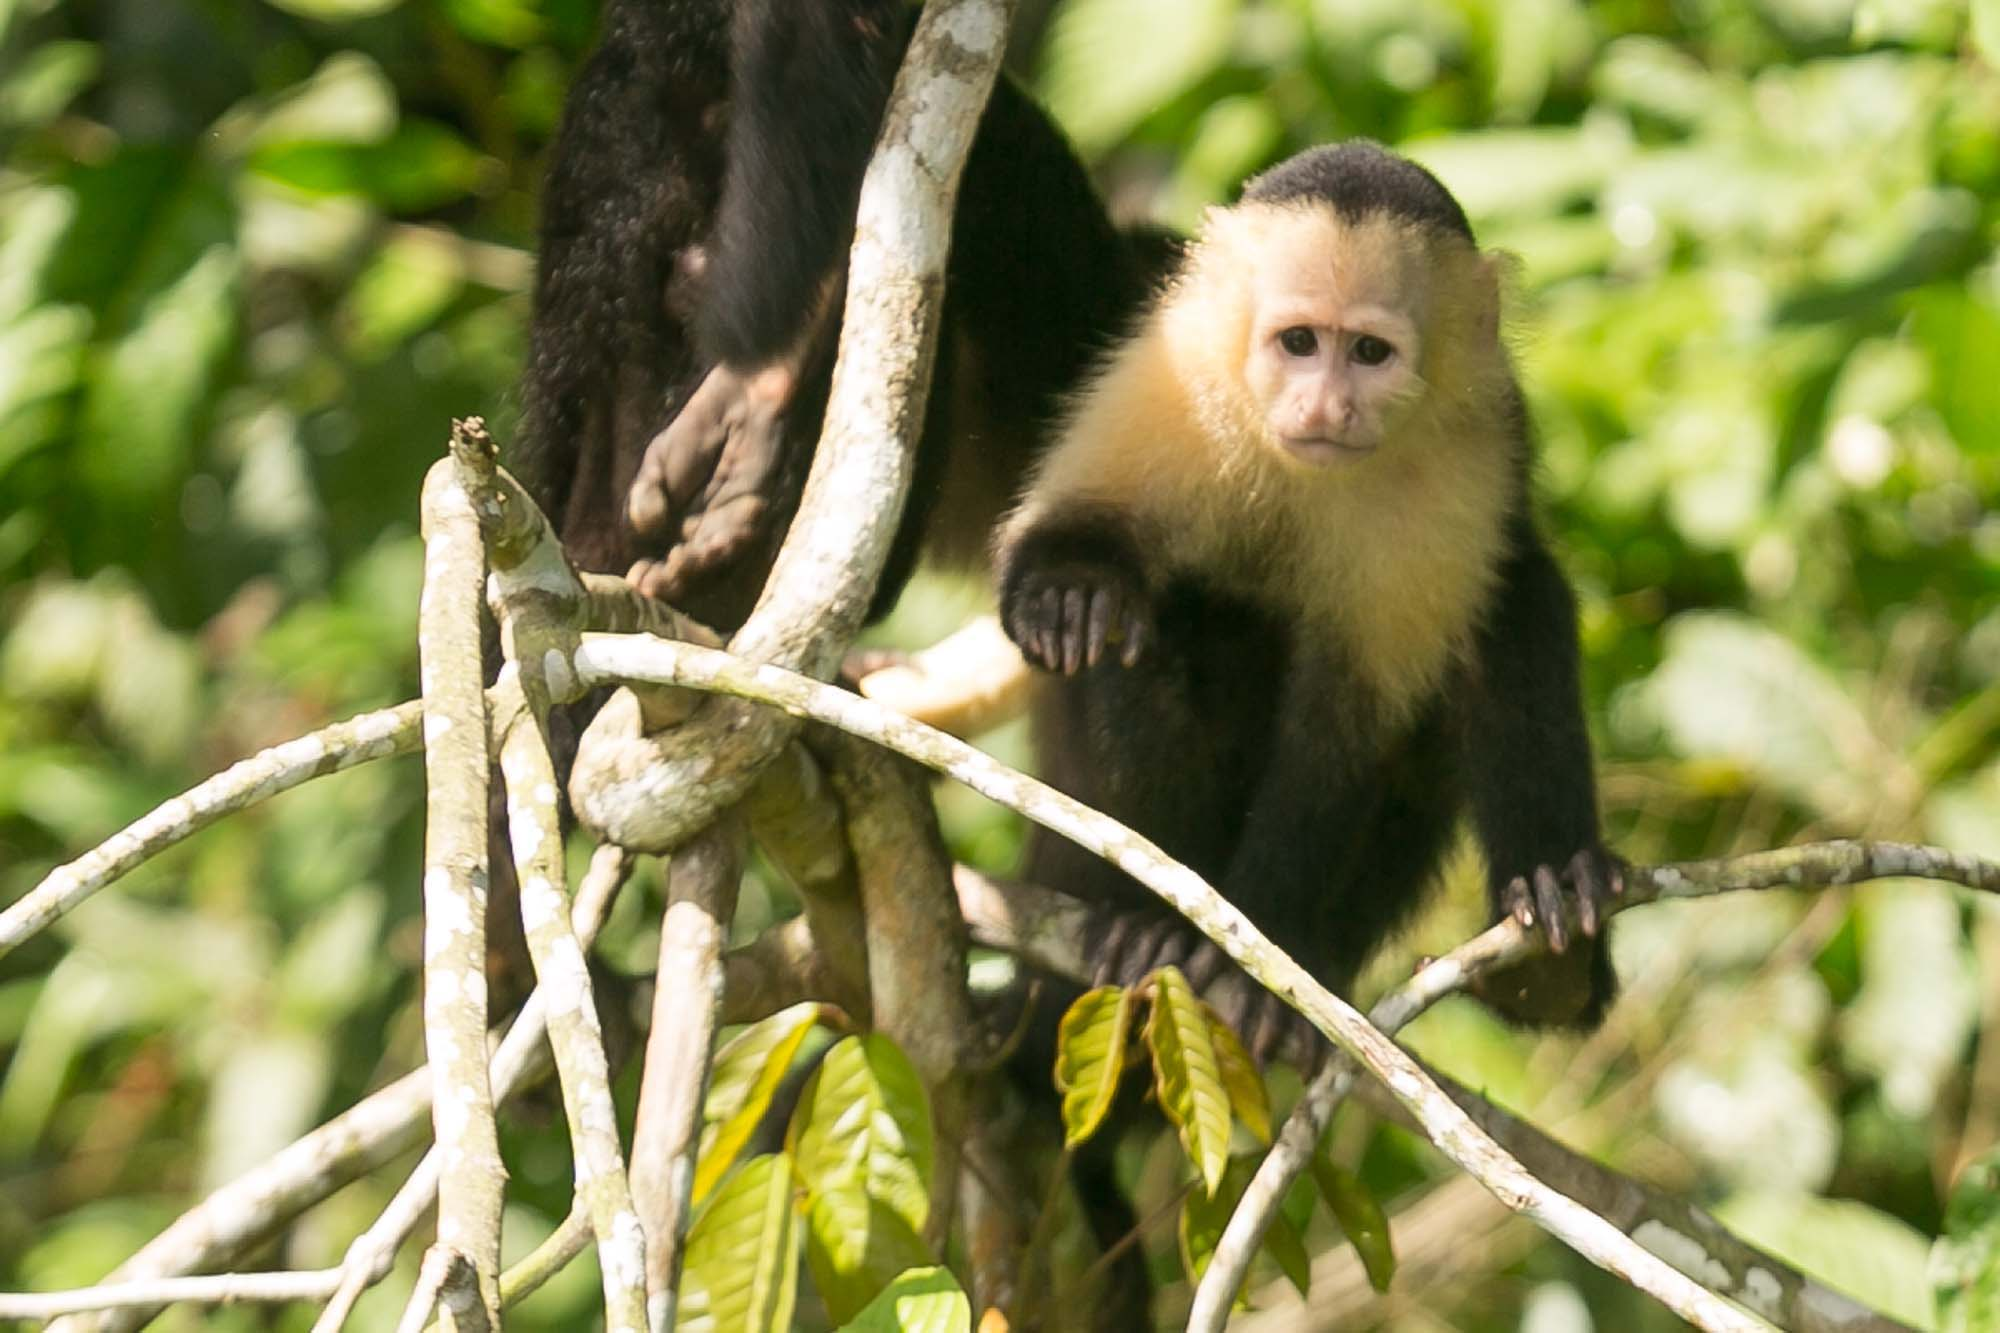 White faced capuchin in tree on Monkey Island